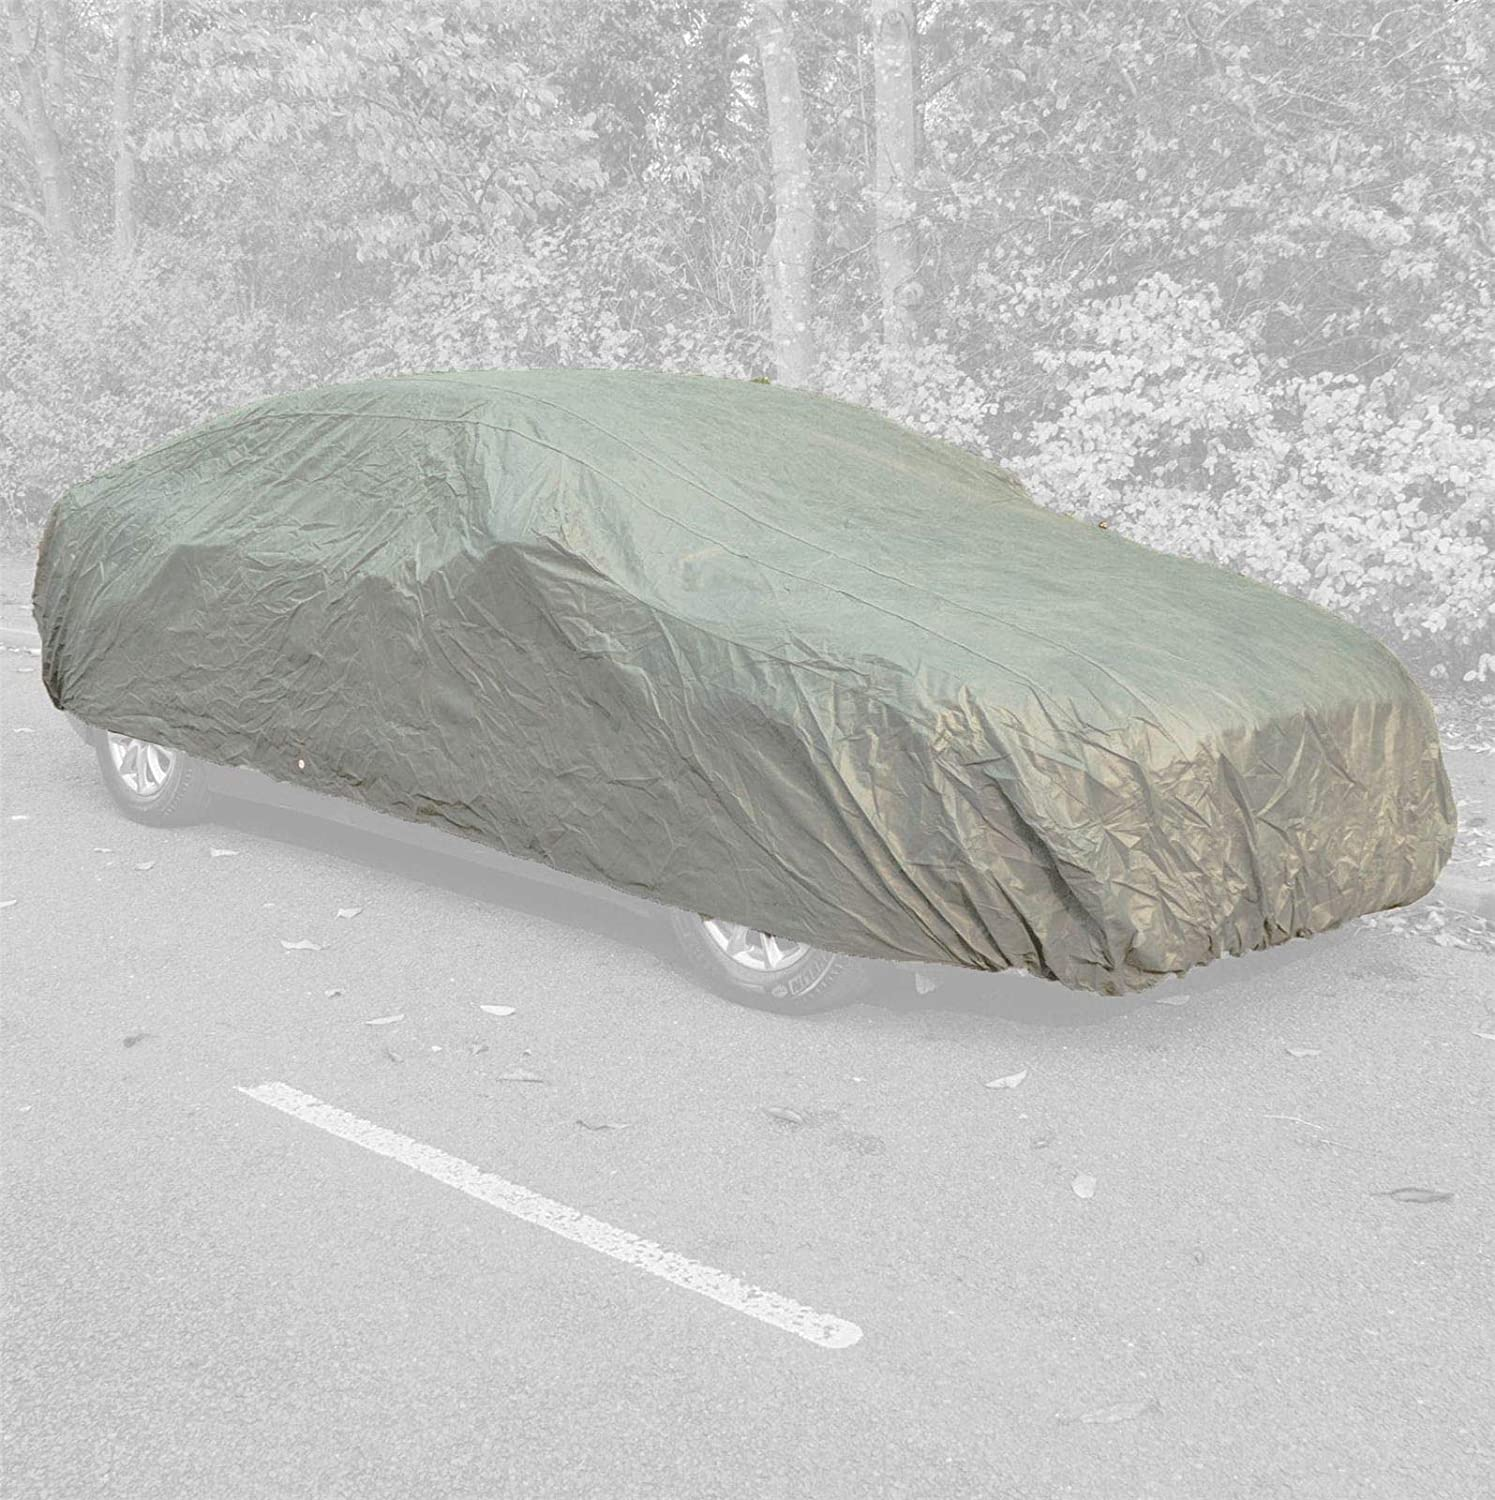 UKB4C Medium Car Cover Water Resistant Breathable Rain UV Sun All Weather Protection for Indoor Outdoor Use